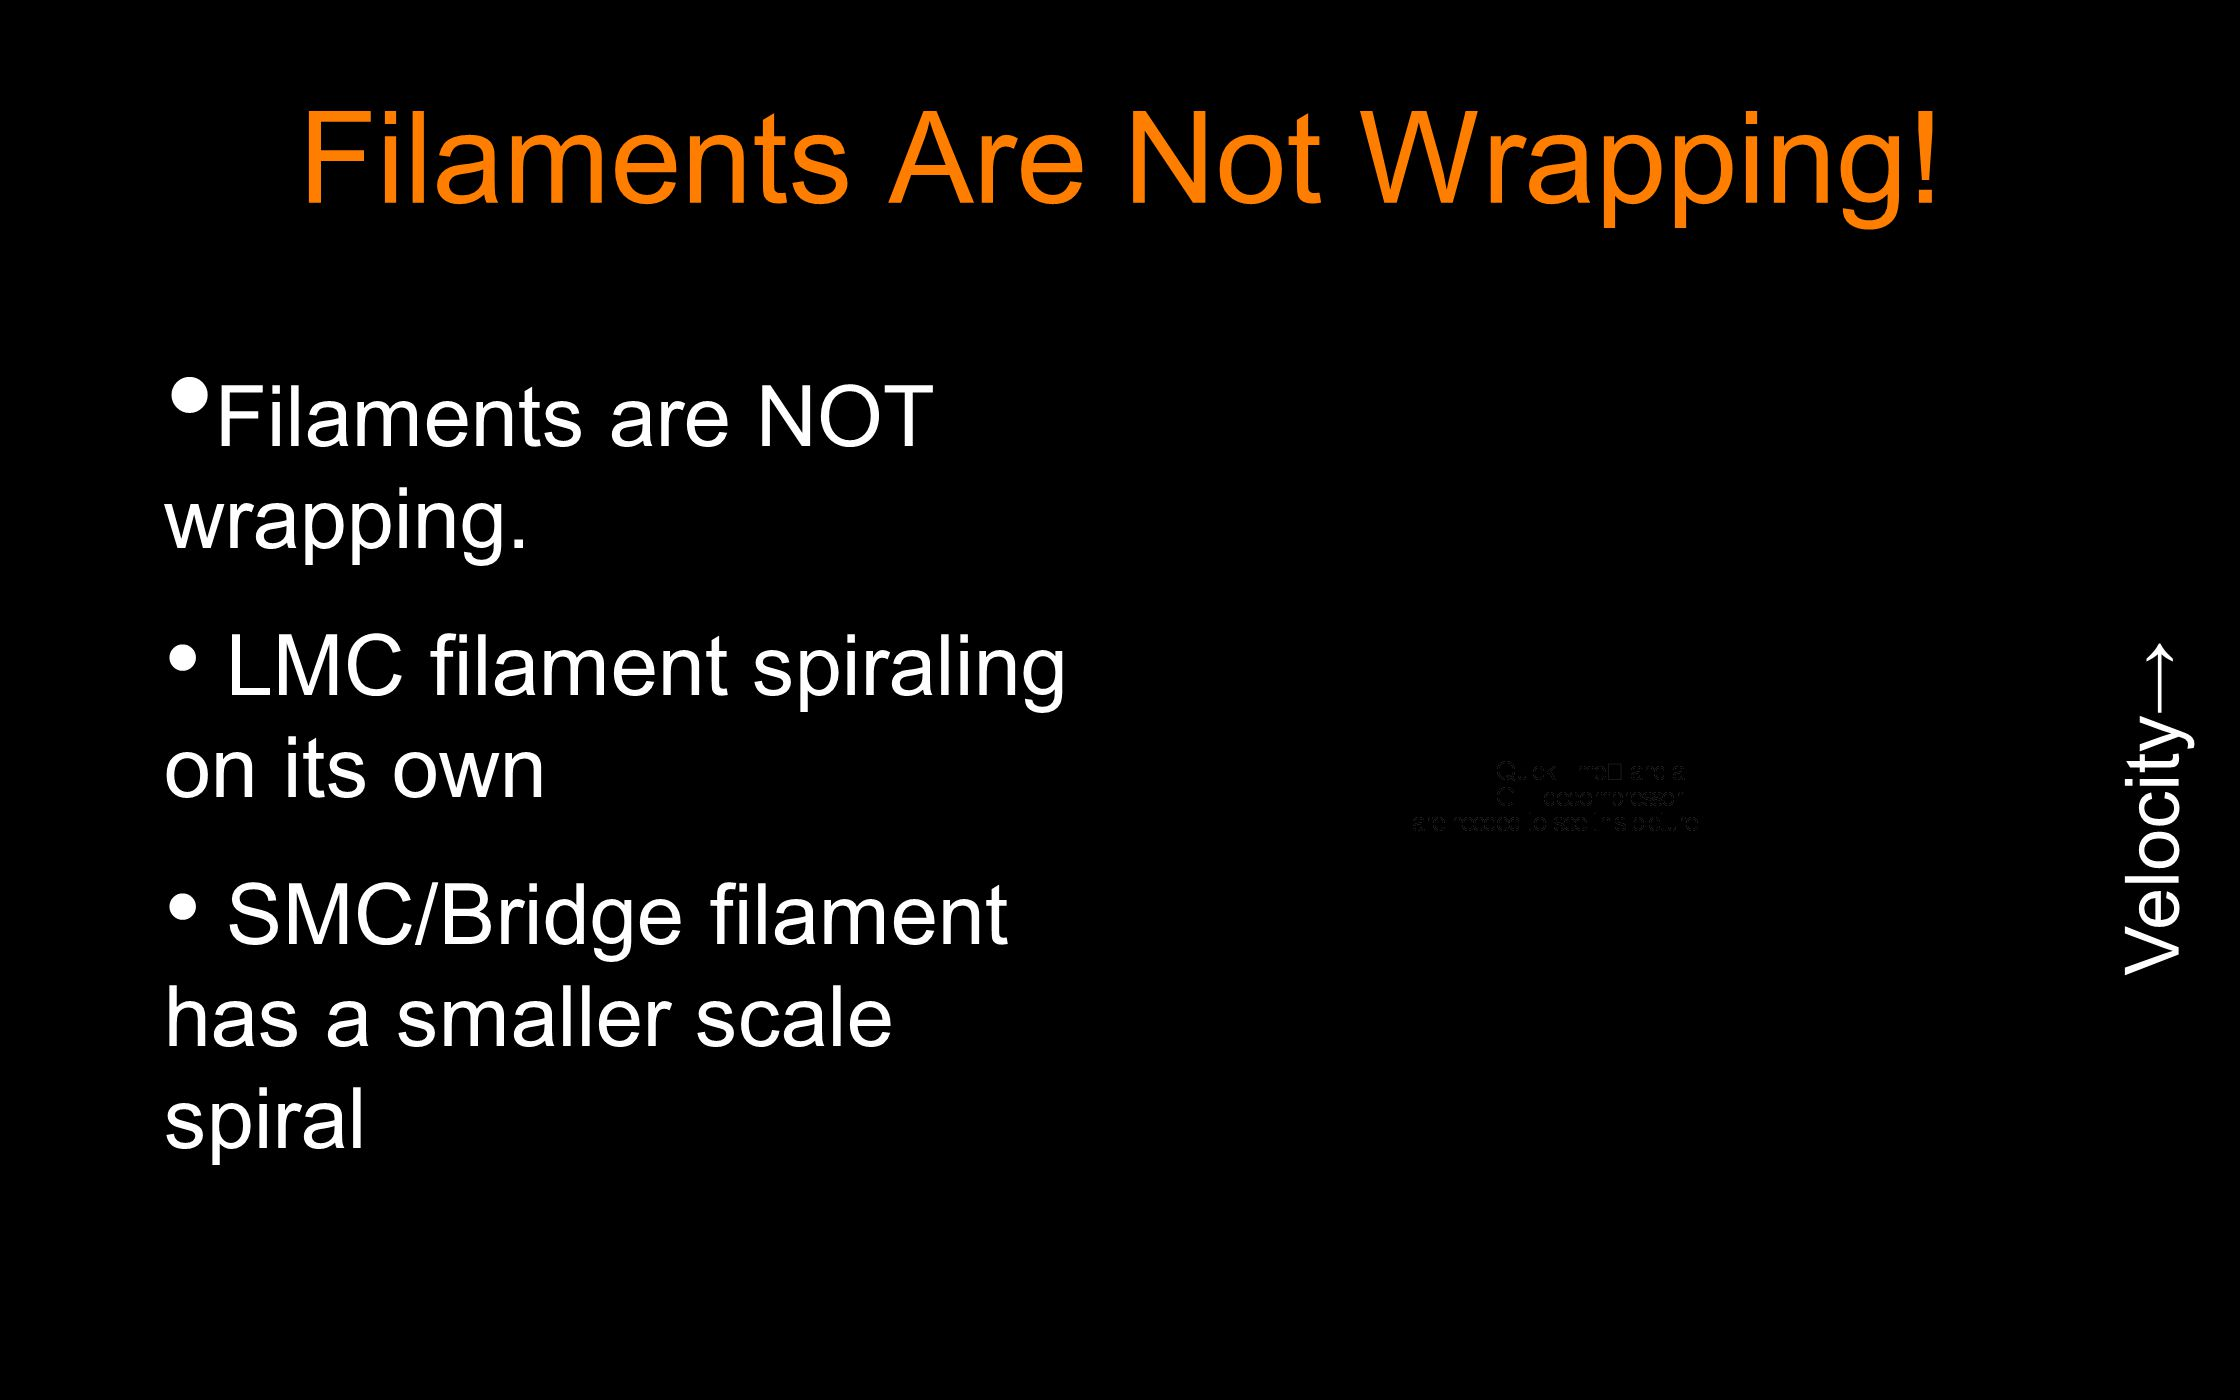 Filaments Are Not Wrapping. Filaments are NOT wrapping.